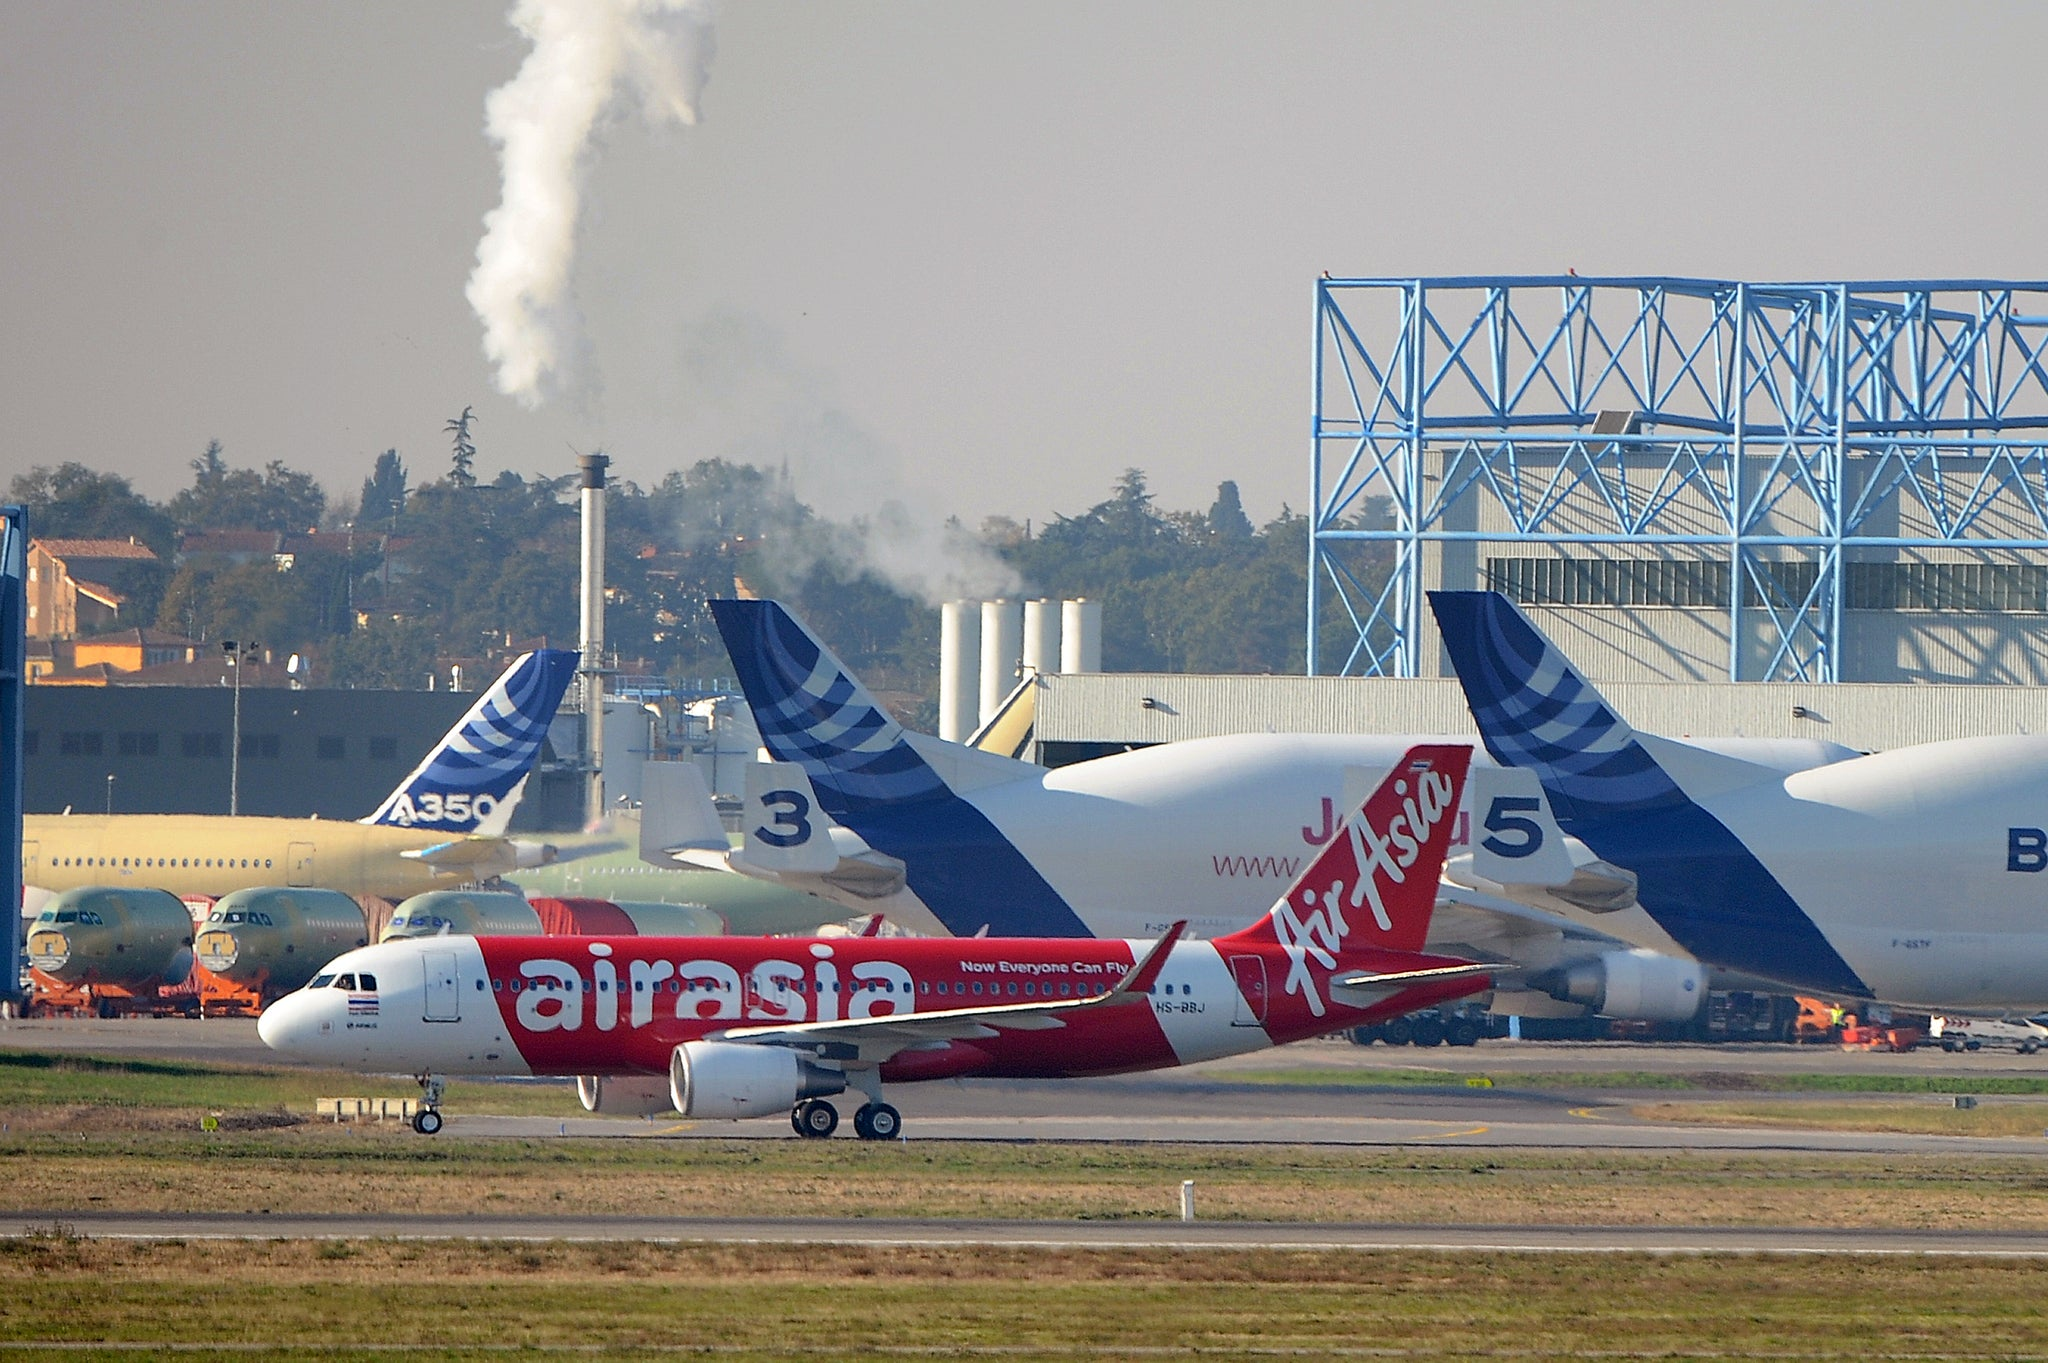 Missing Airasia Flight Qz8501 Airline Magazine Bragged That Its Jakarta Singapore Planes Would Never Get Lost The Independent